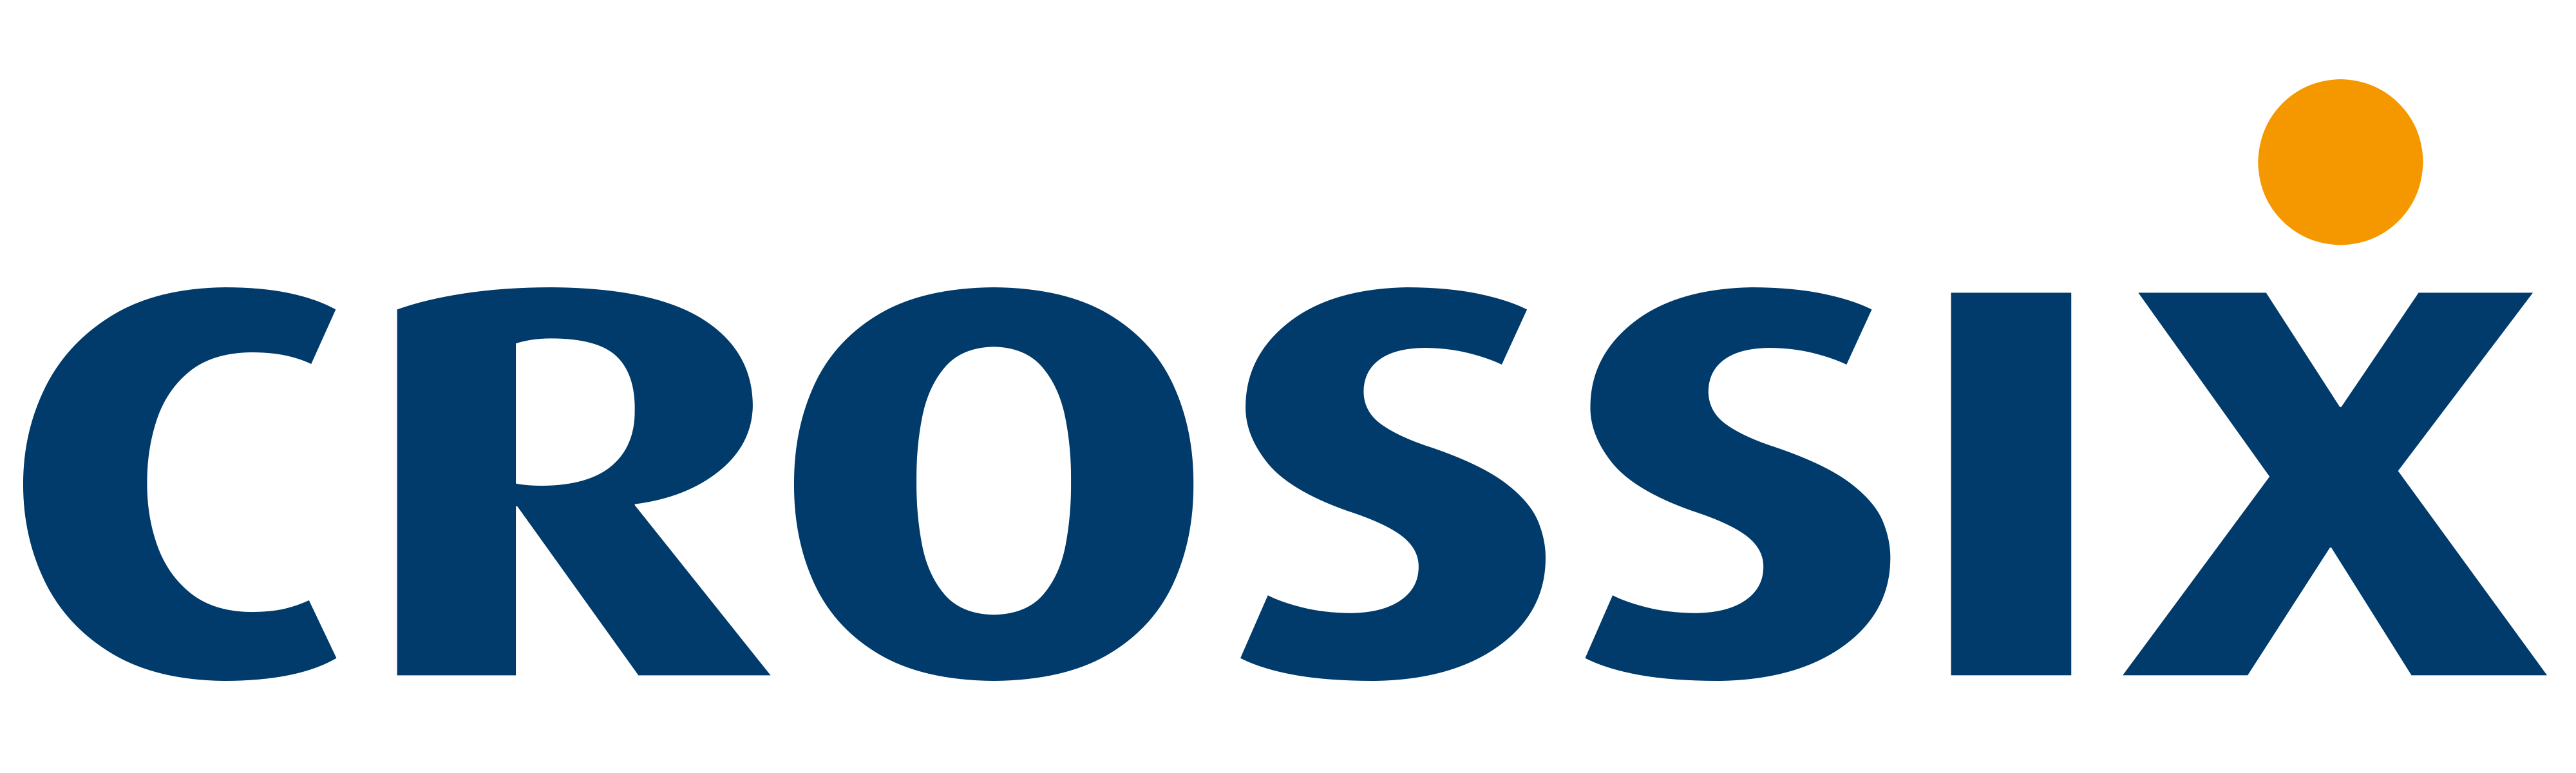 Crossix_Logo_Large_No_White_Background